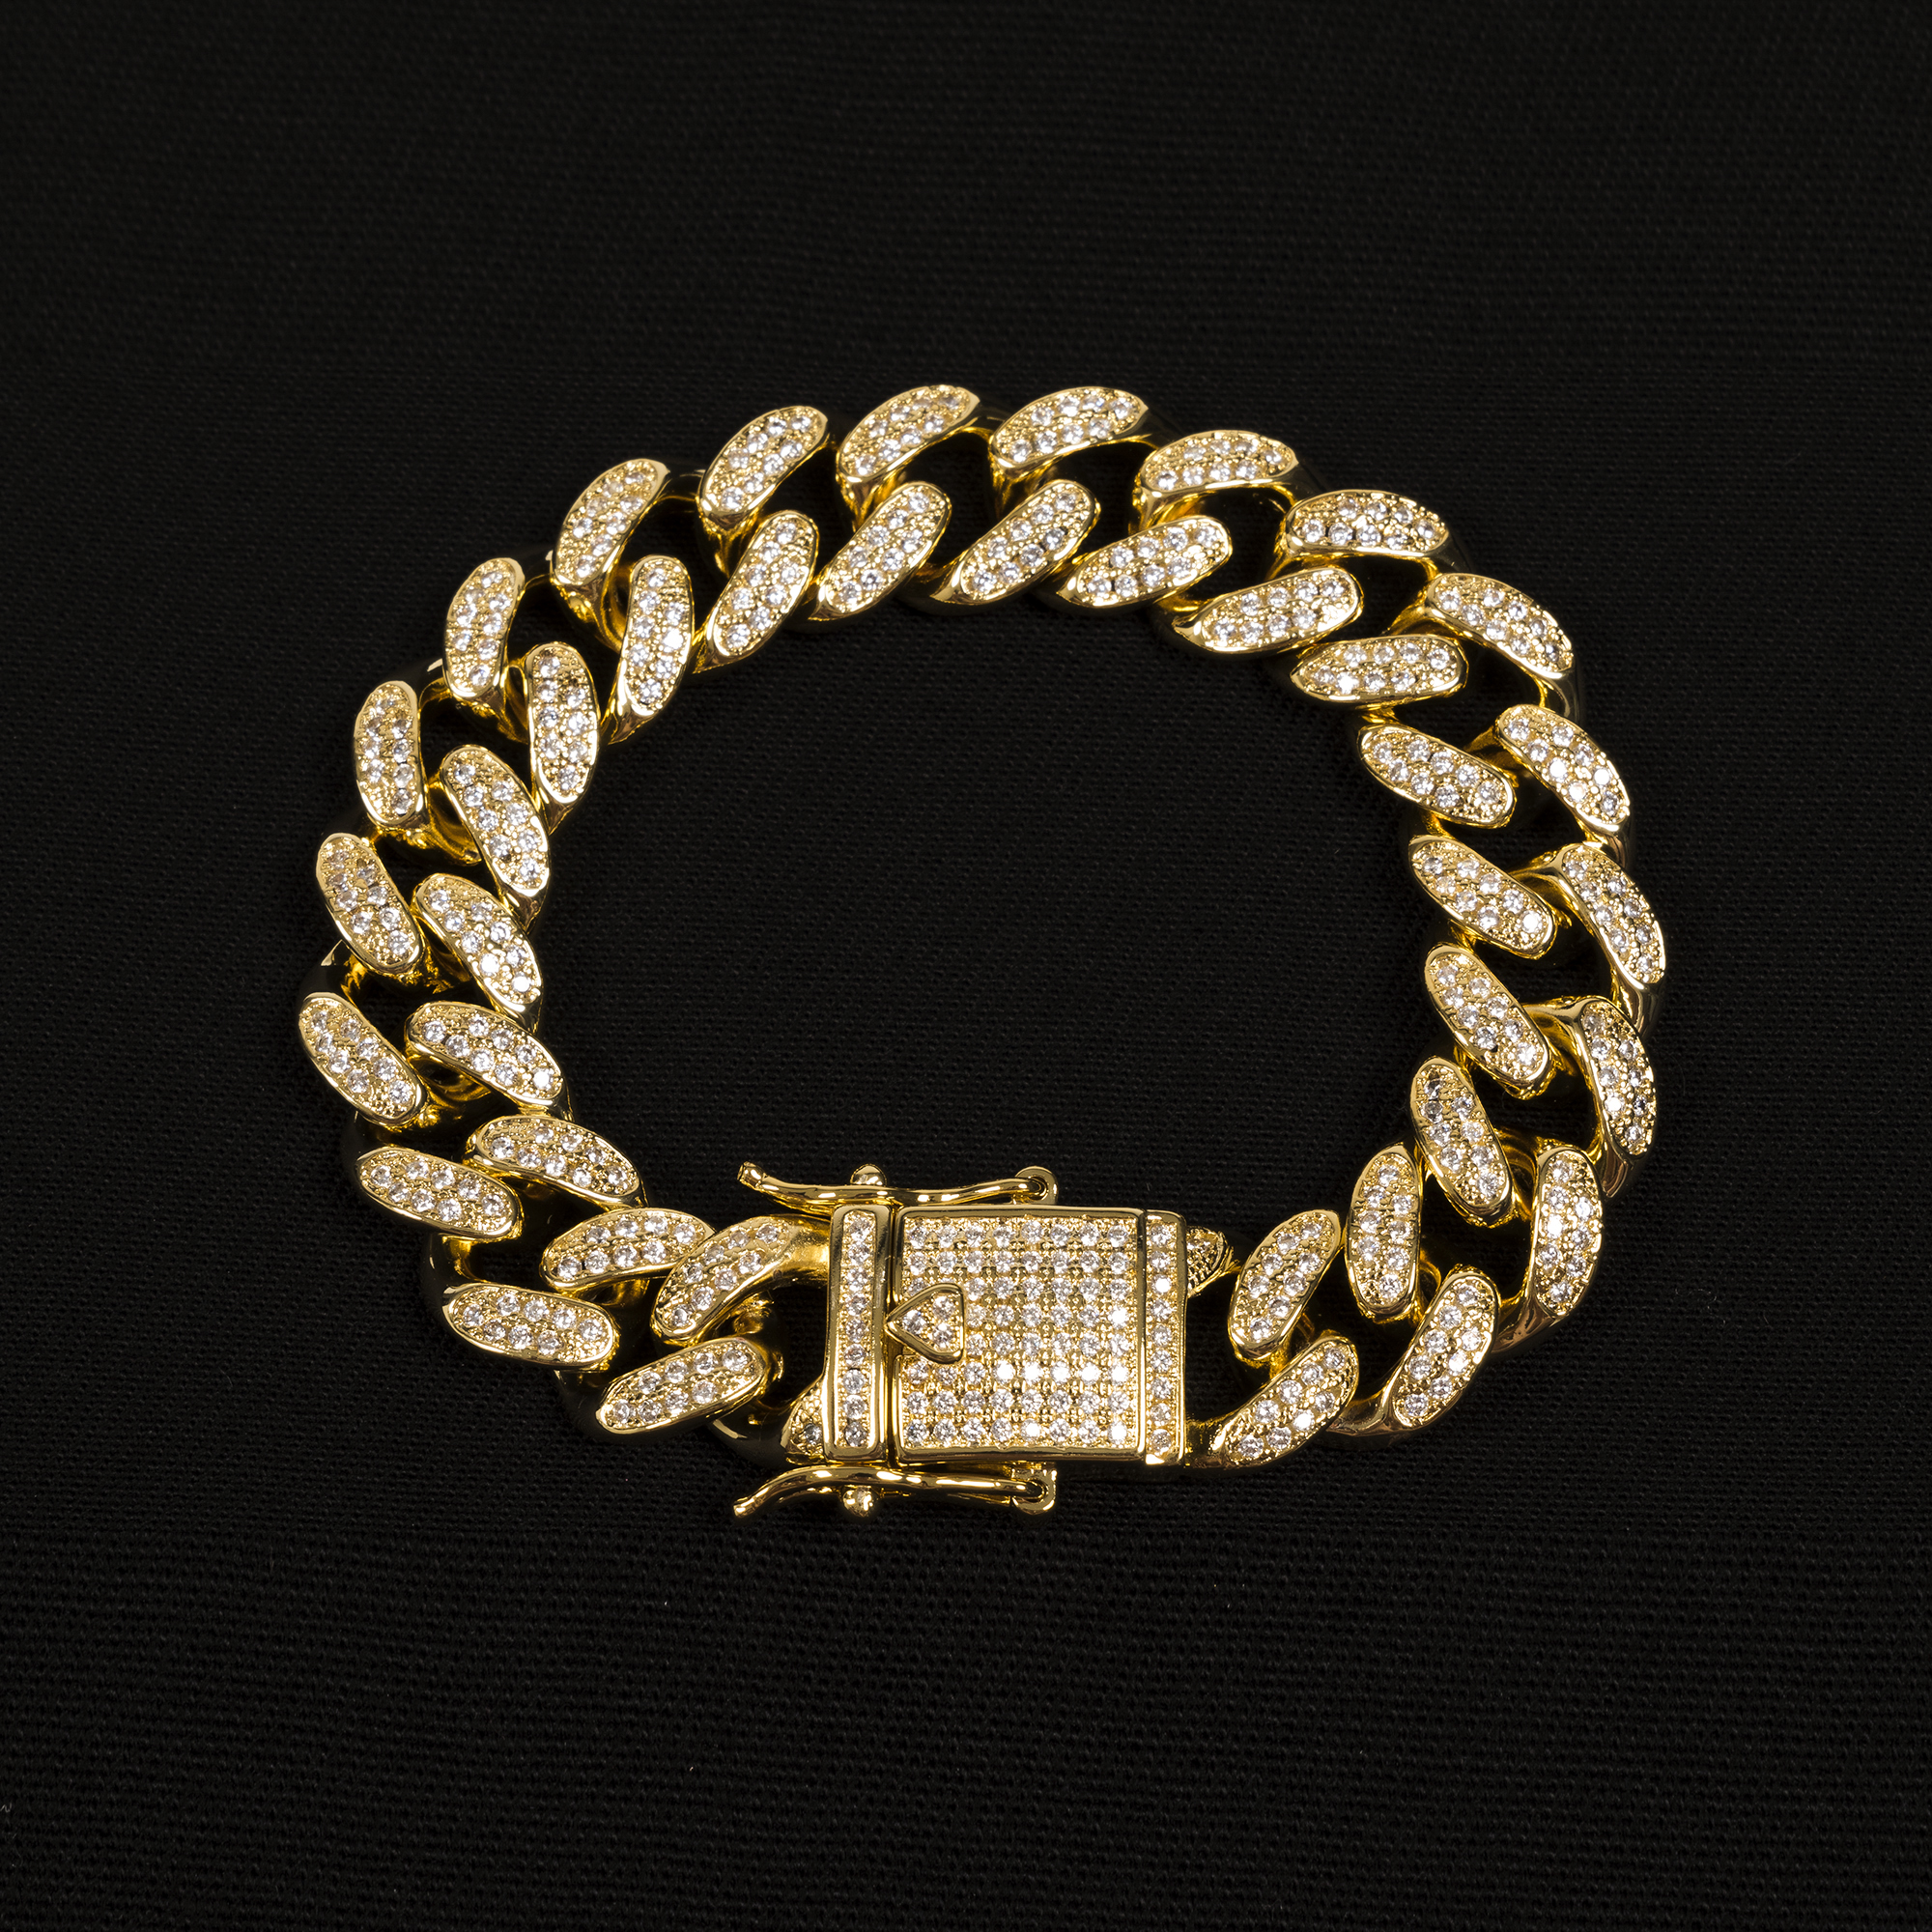 CUBAN LINK BRACELET SLIM IN GOLD/SILVER